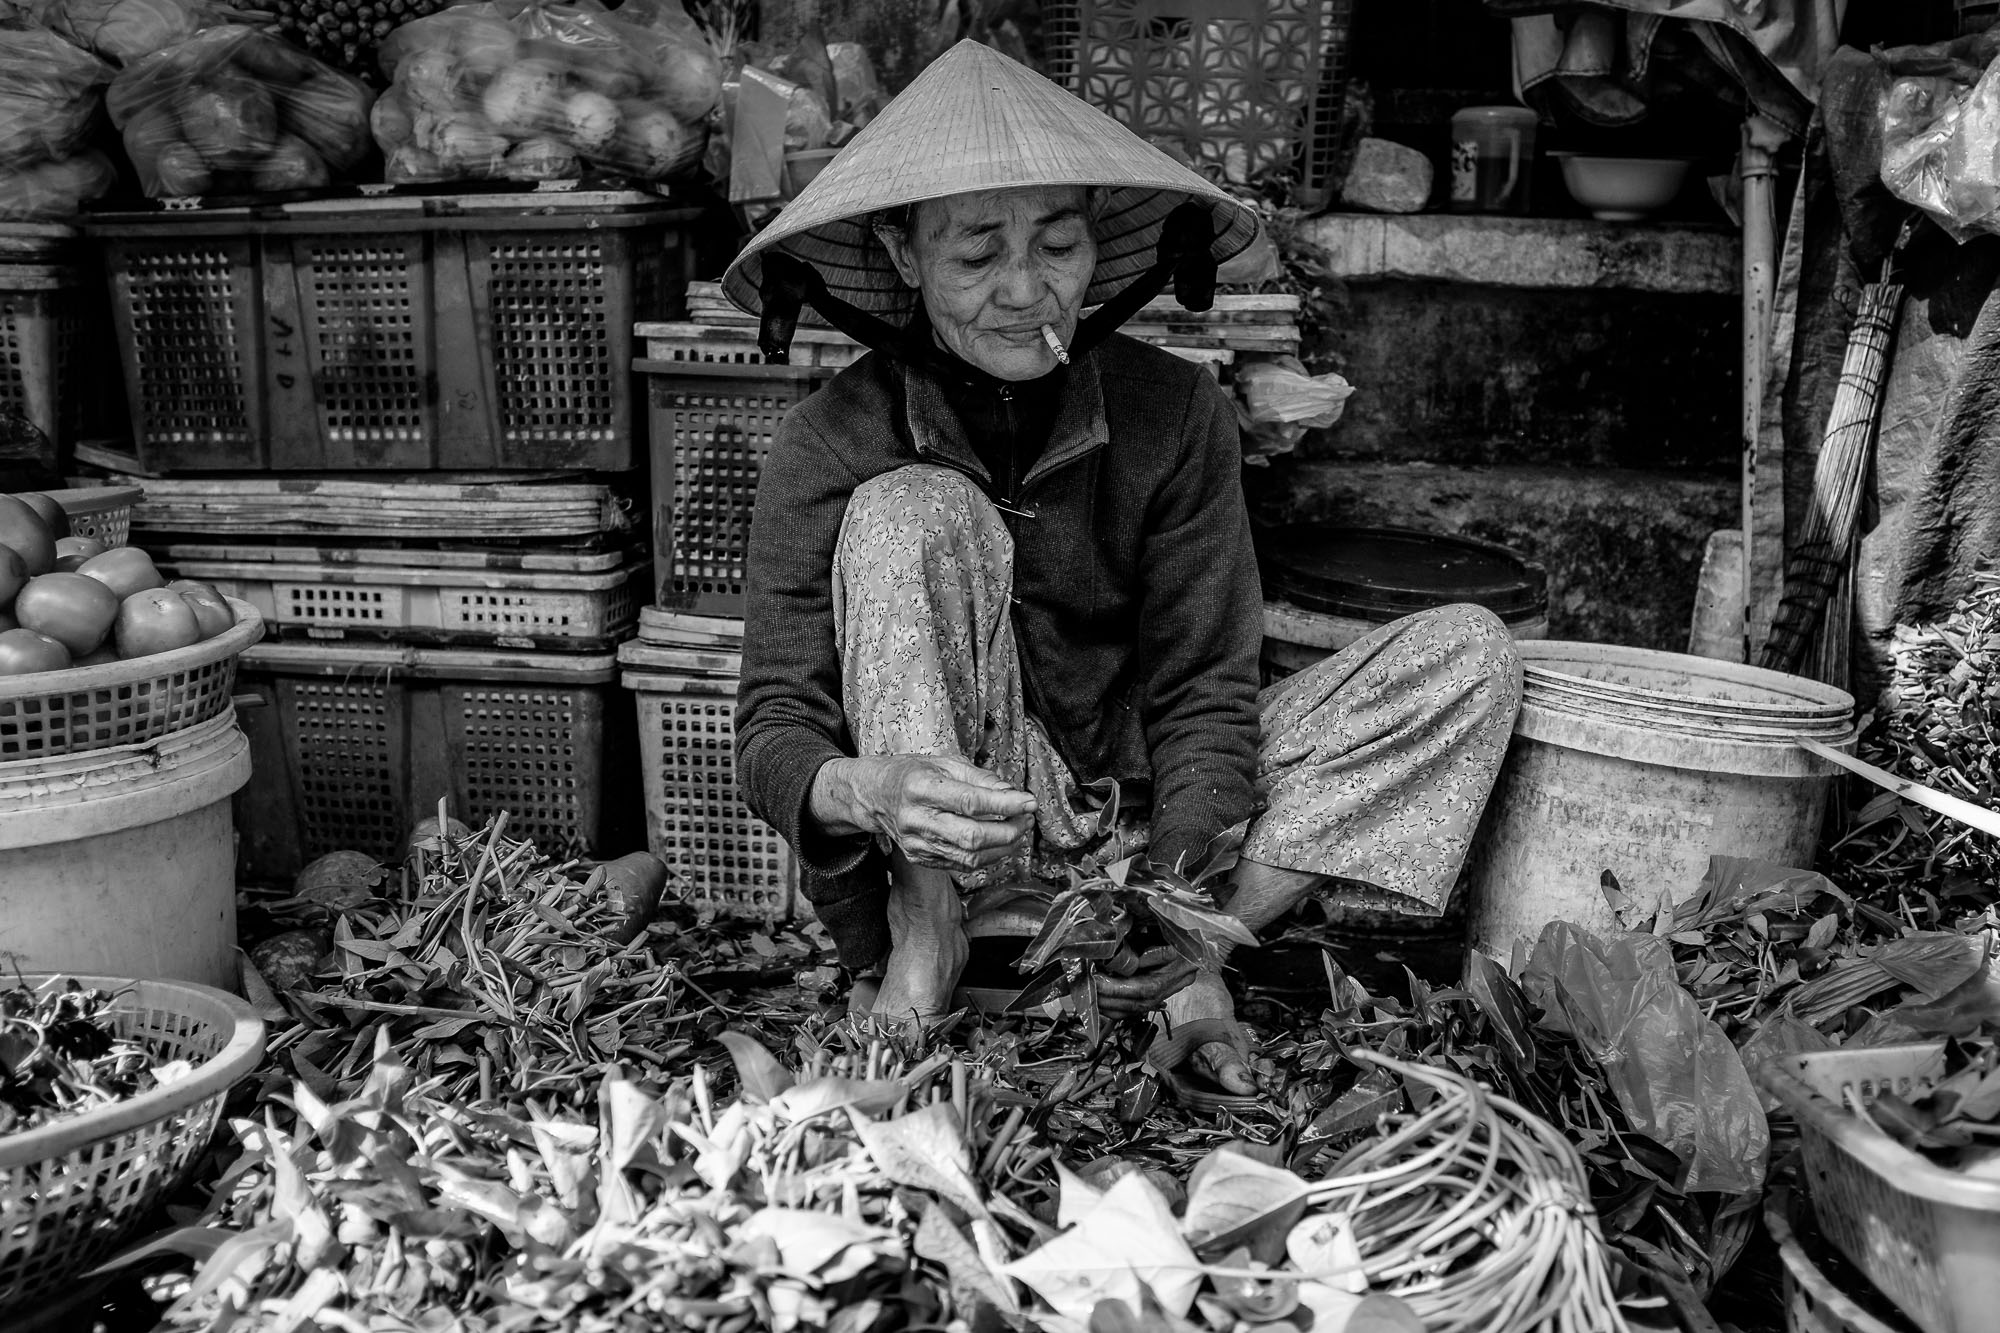 A Vendor is smoking and sorting through her goods